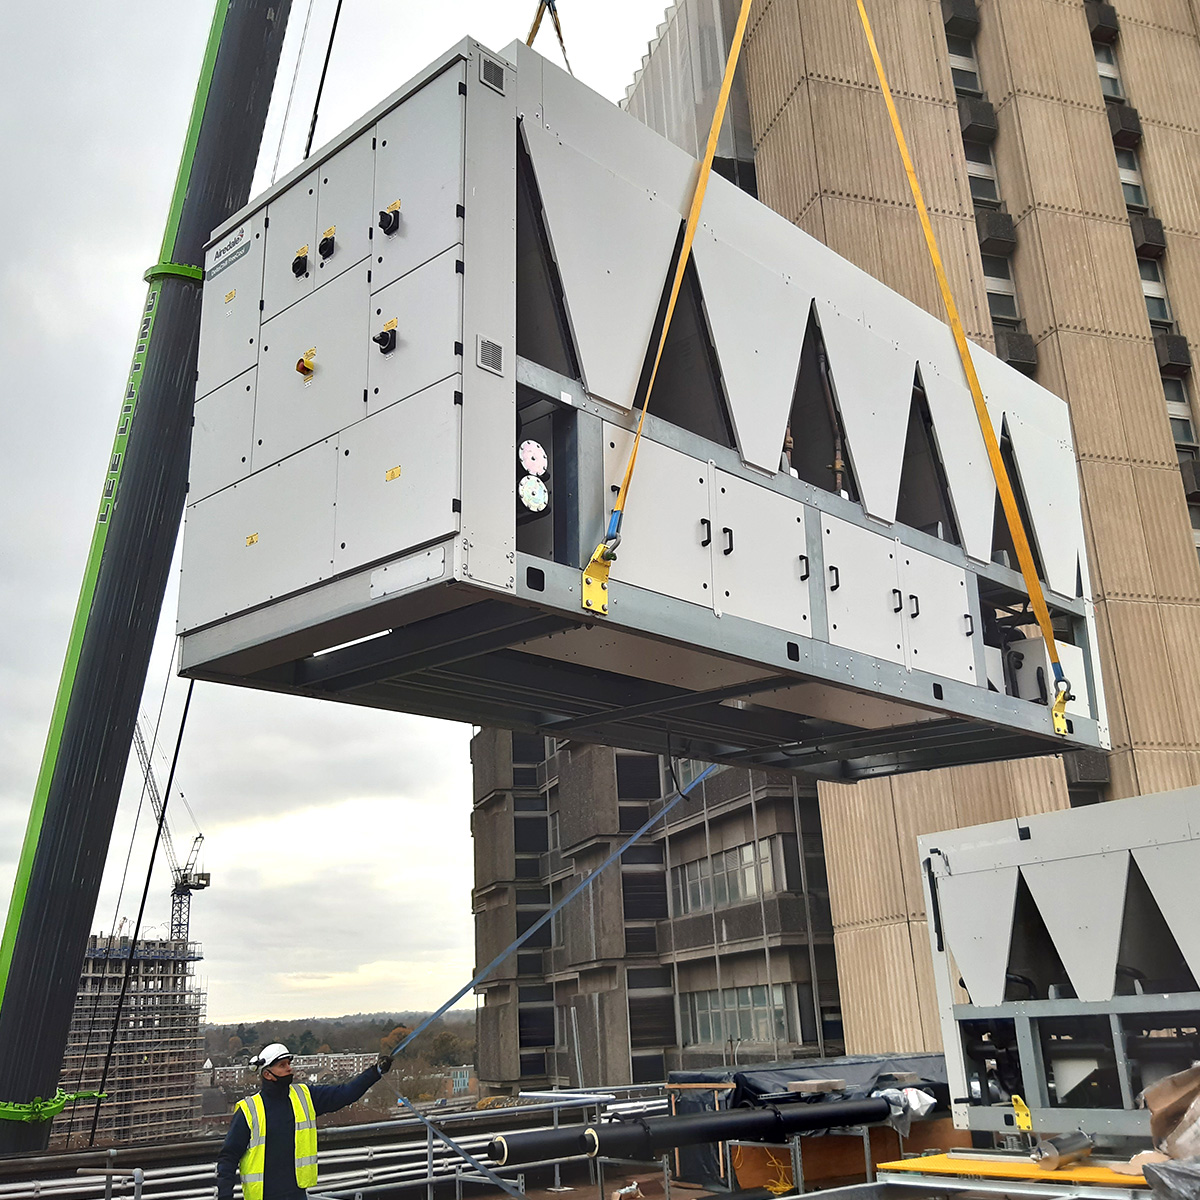 Installation of new roof-mounted chillers